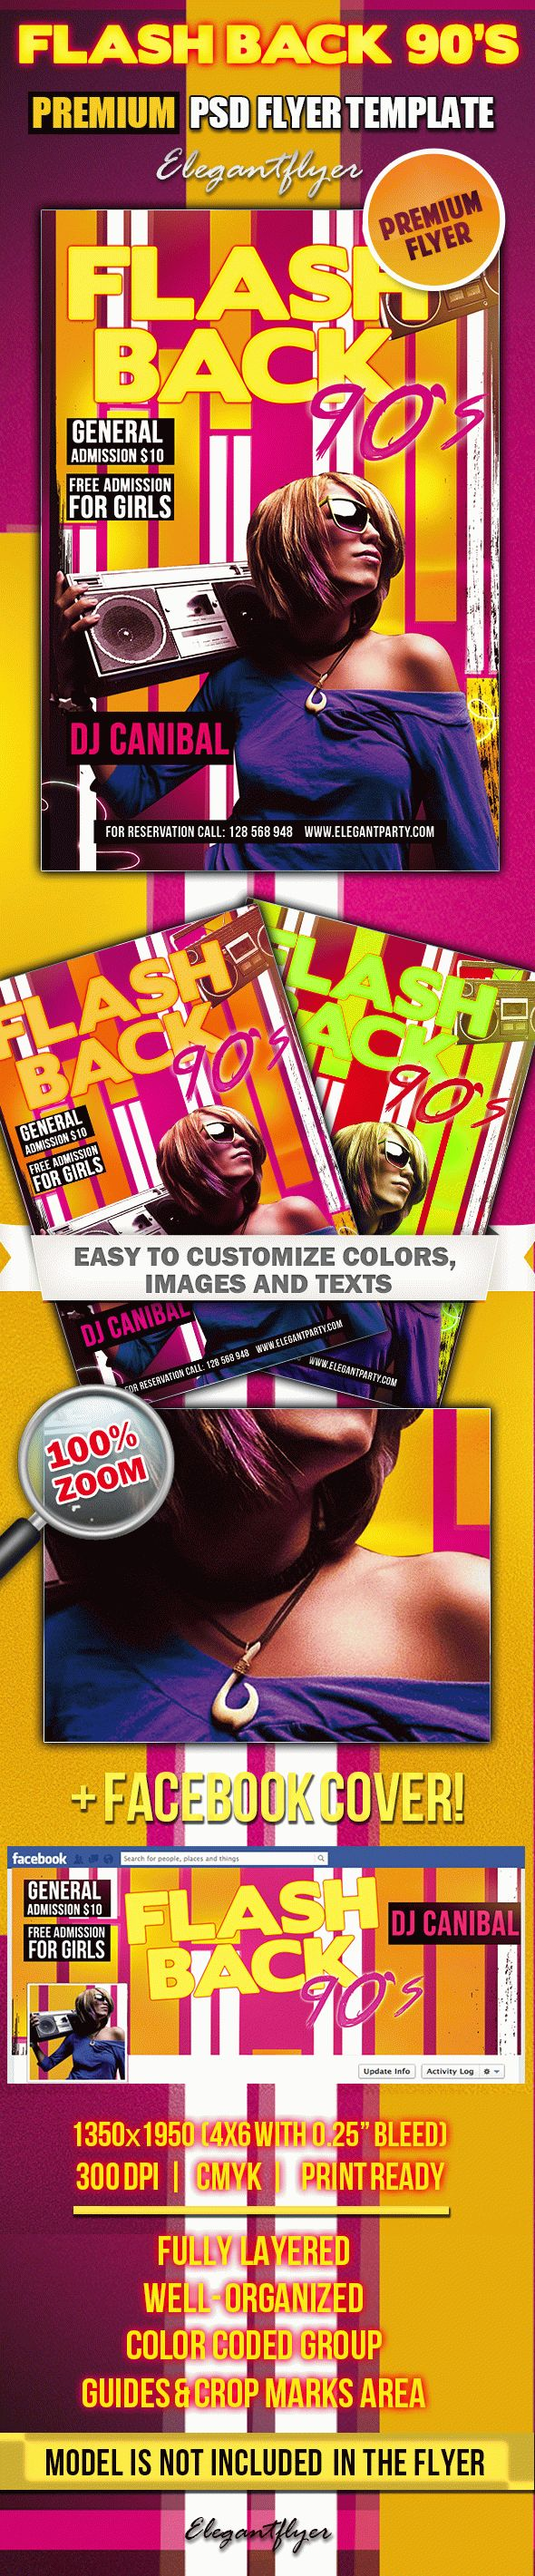 Flash Back 90's – PSD Flyer Templates